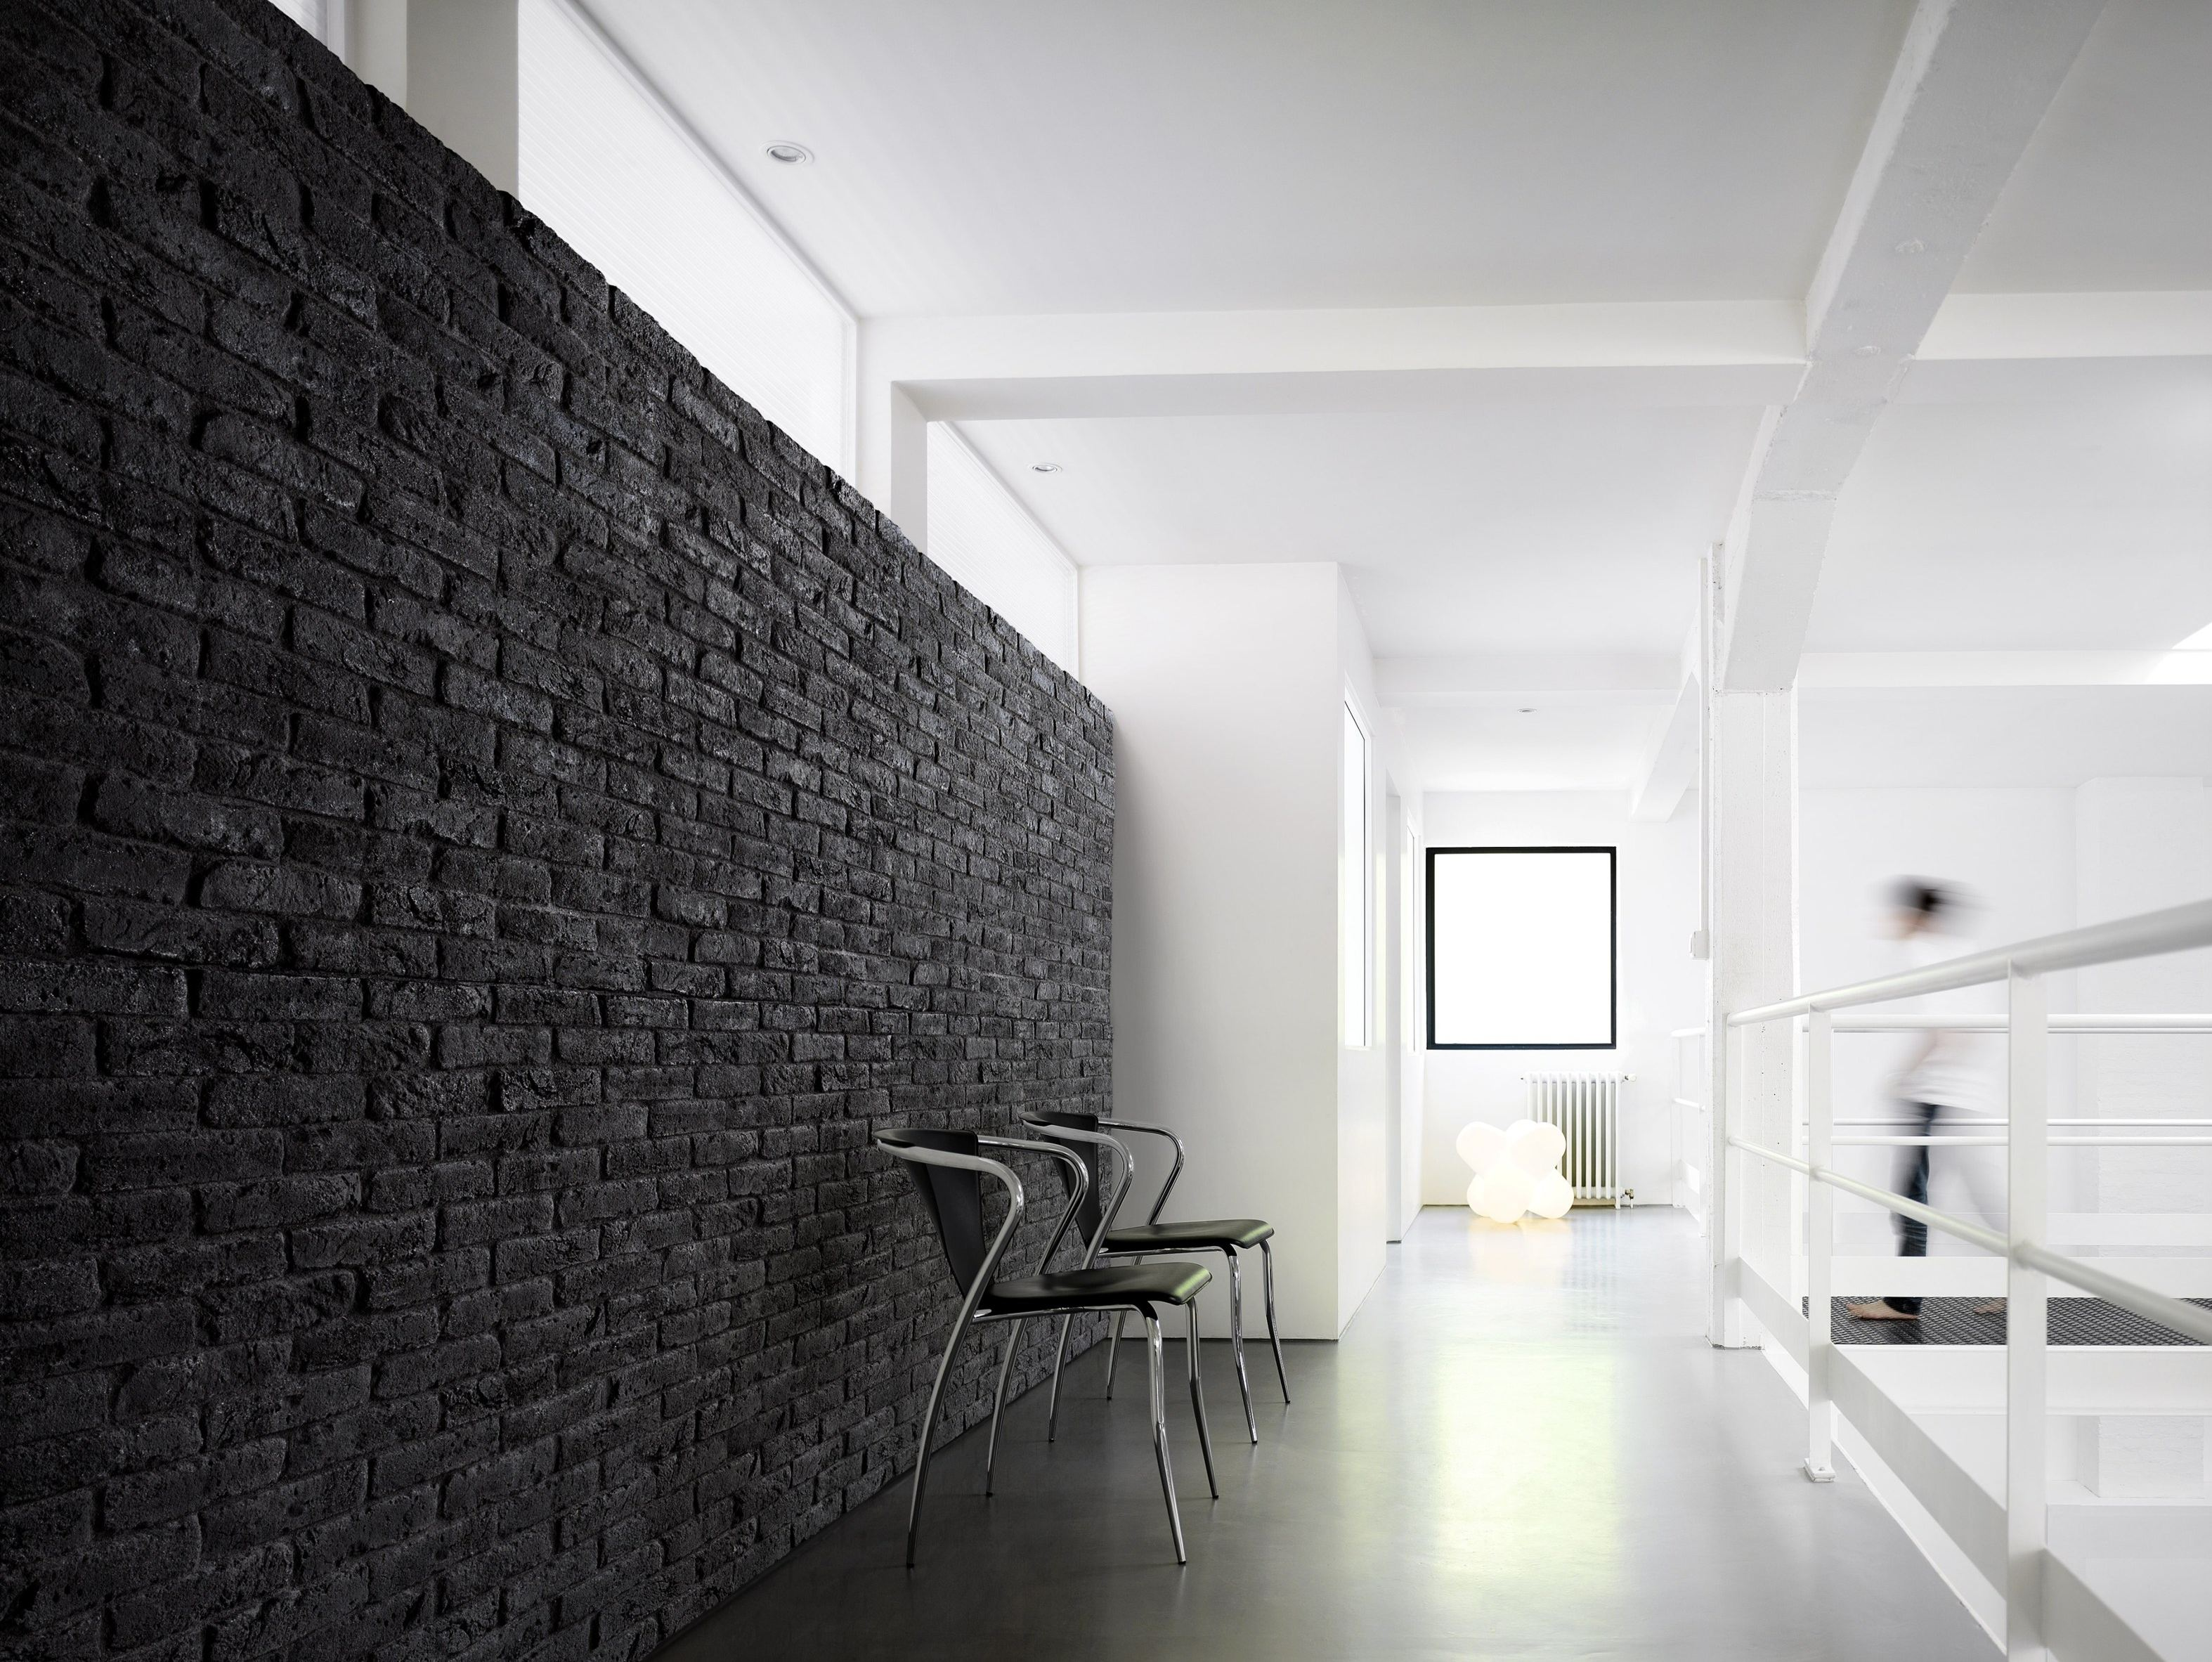 Orsol Brique Reconstructed Stone Wall Tiles Brique Black & White By Orsol